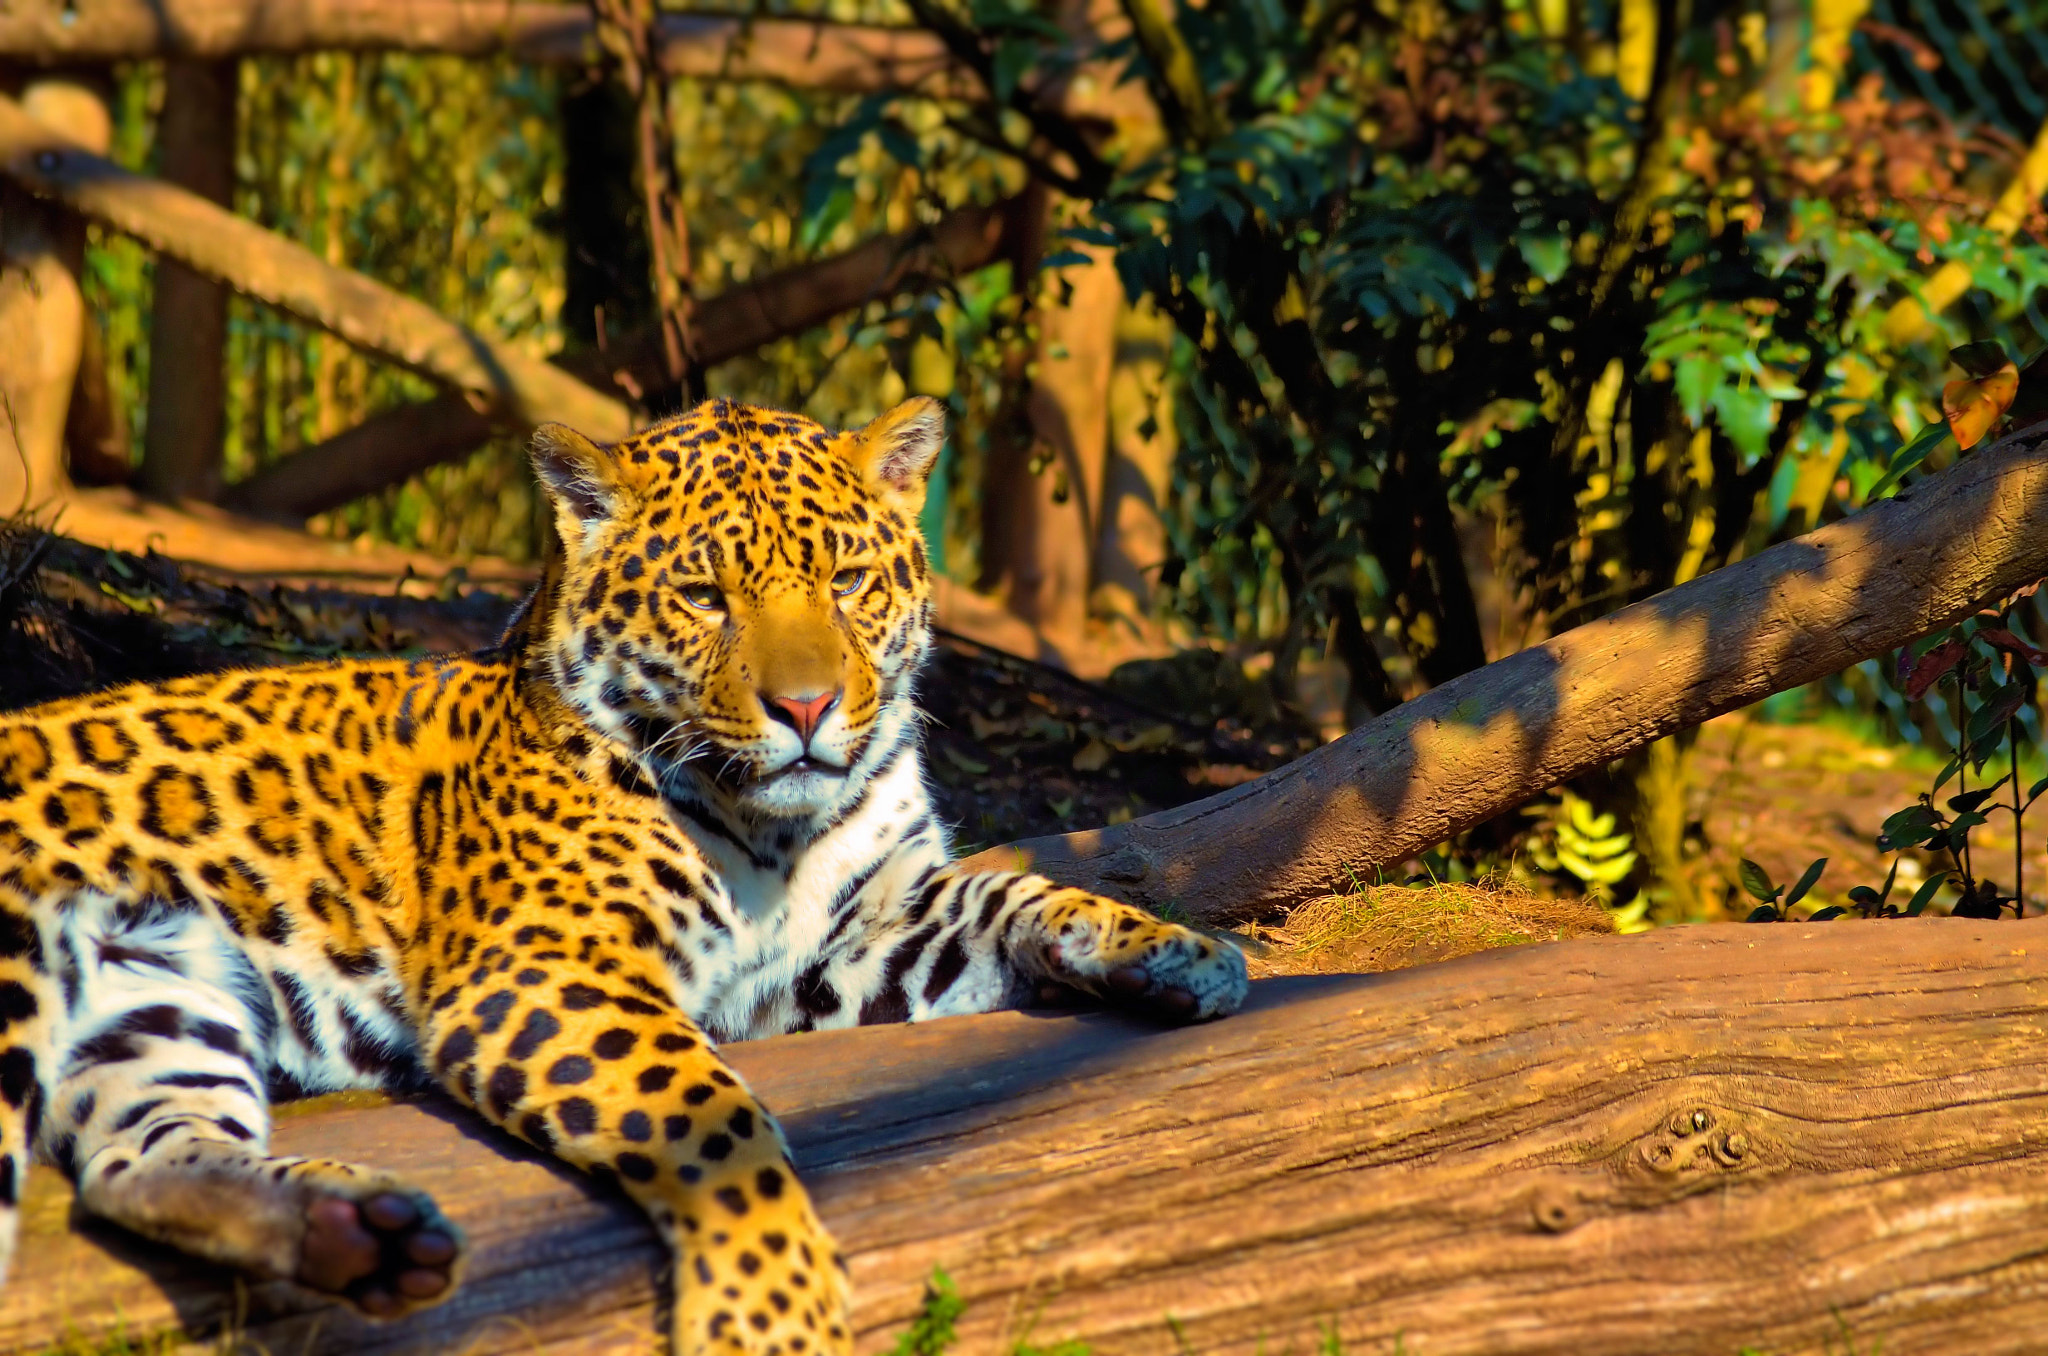 Photograph leopard by joan koch on 500px